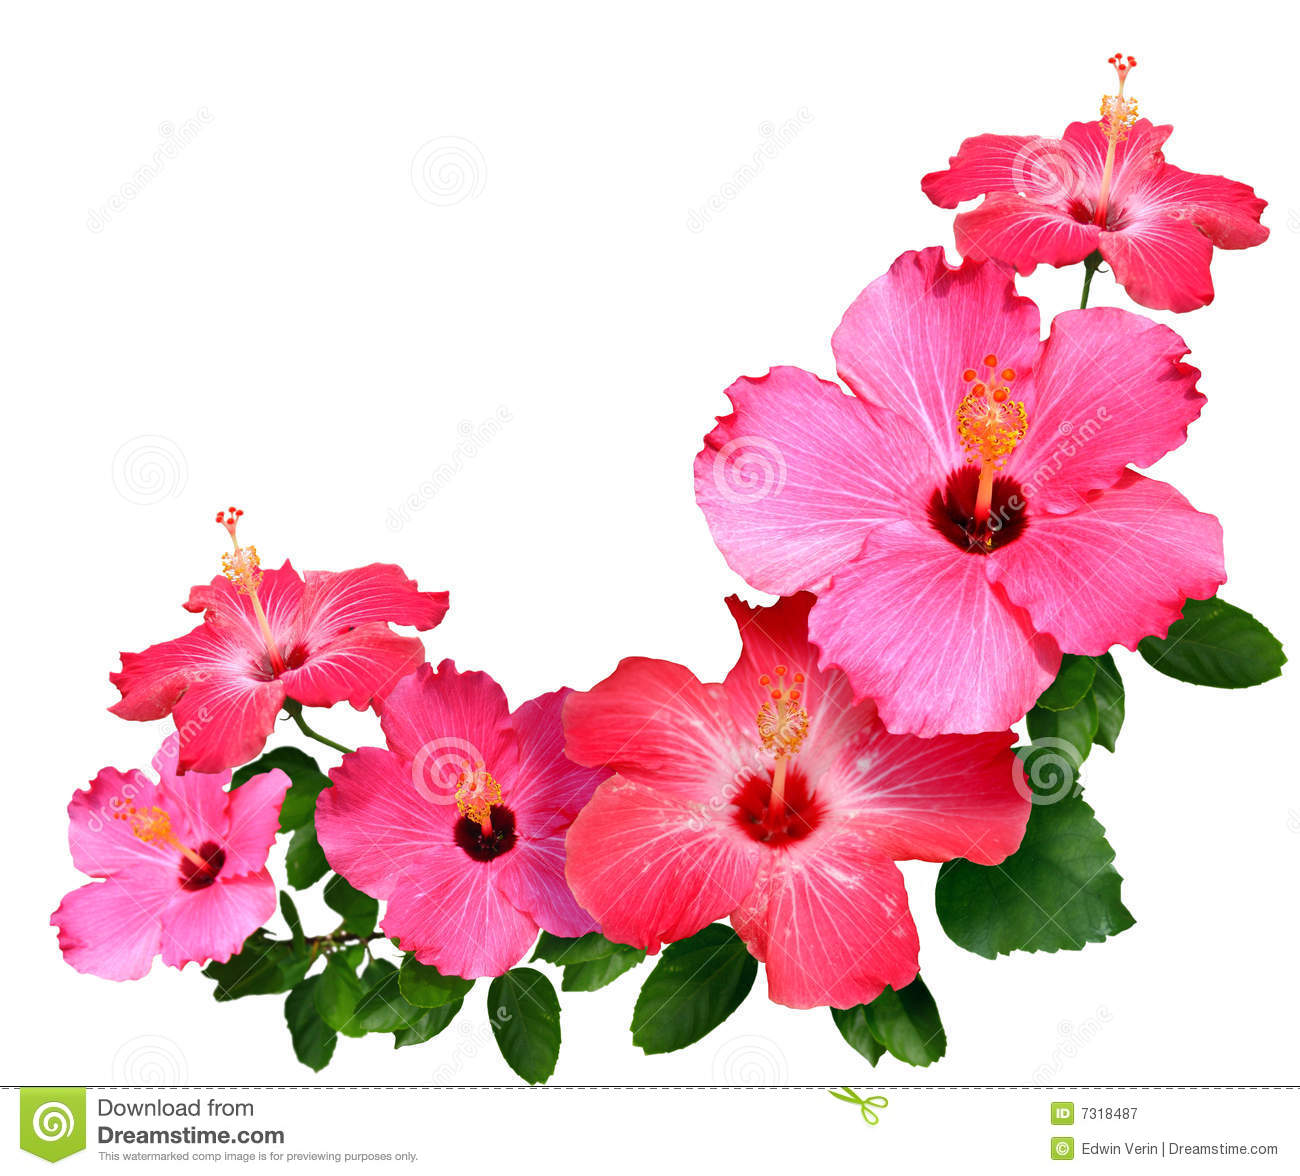 Hibiscus flowers royalty free stock photography image 7318487 - Hibiscus images download ...